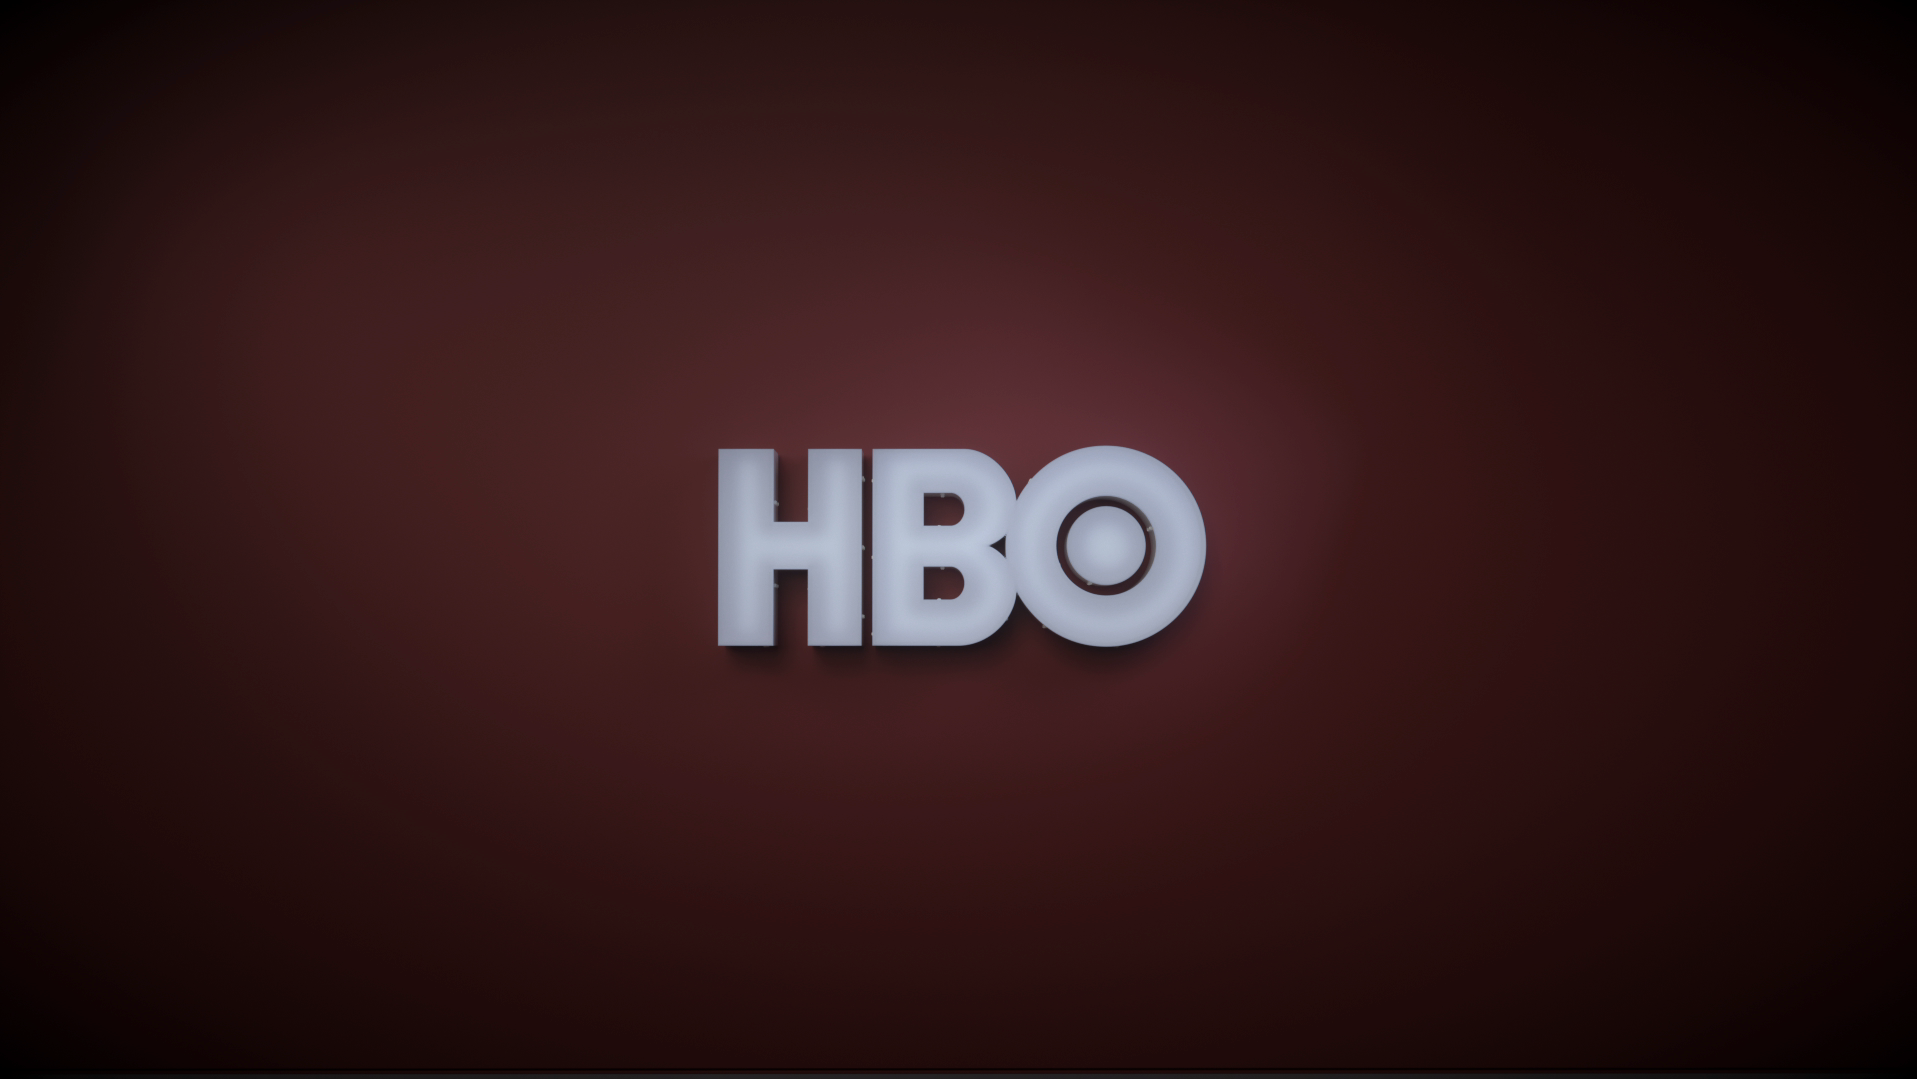 HBO_02.PNG